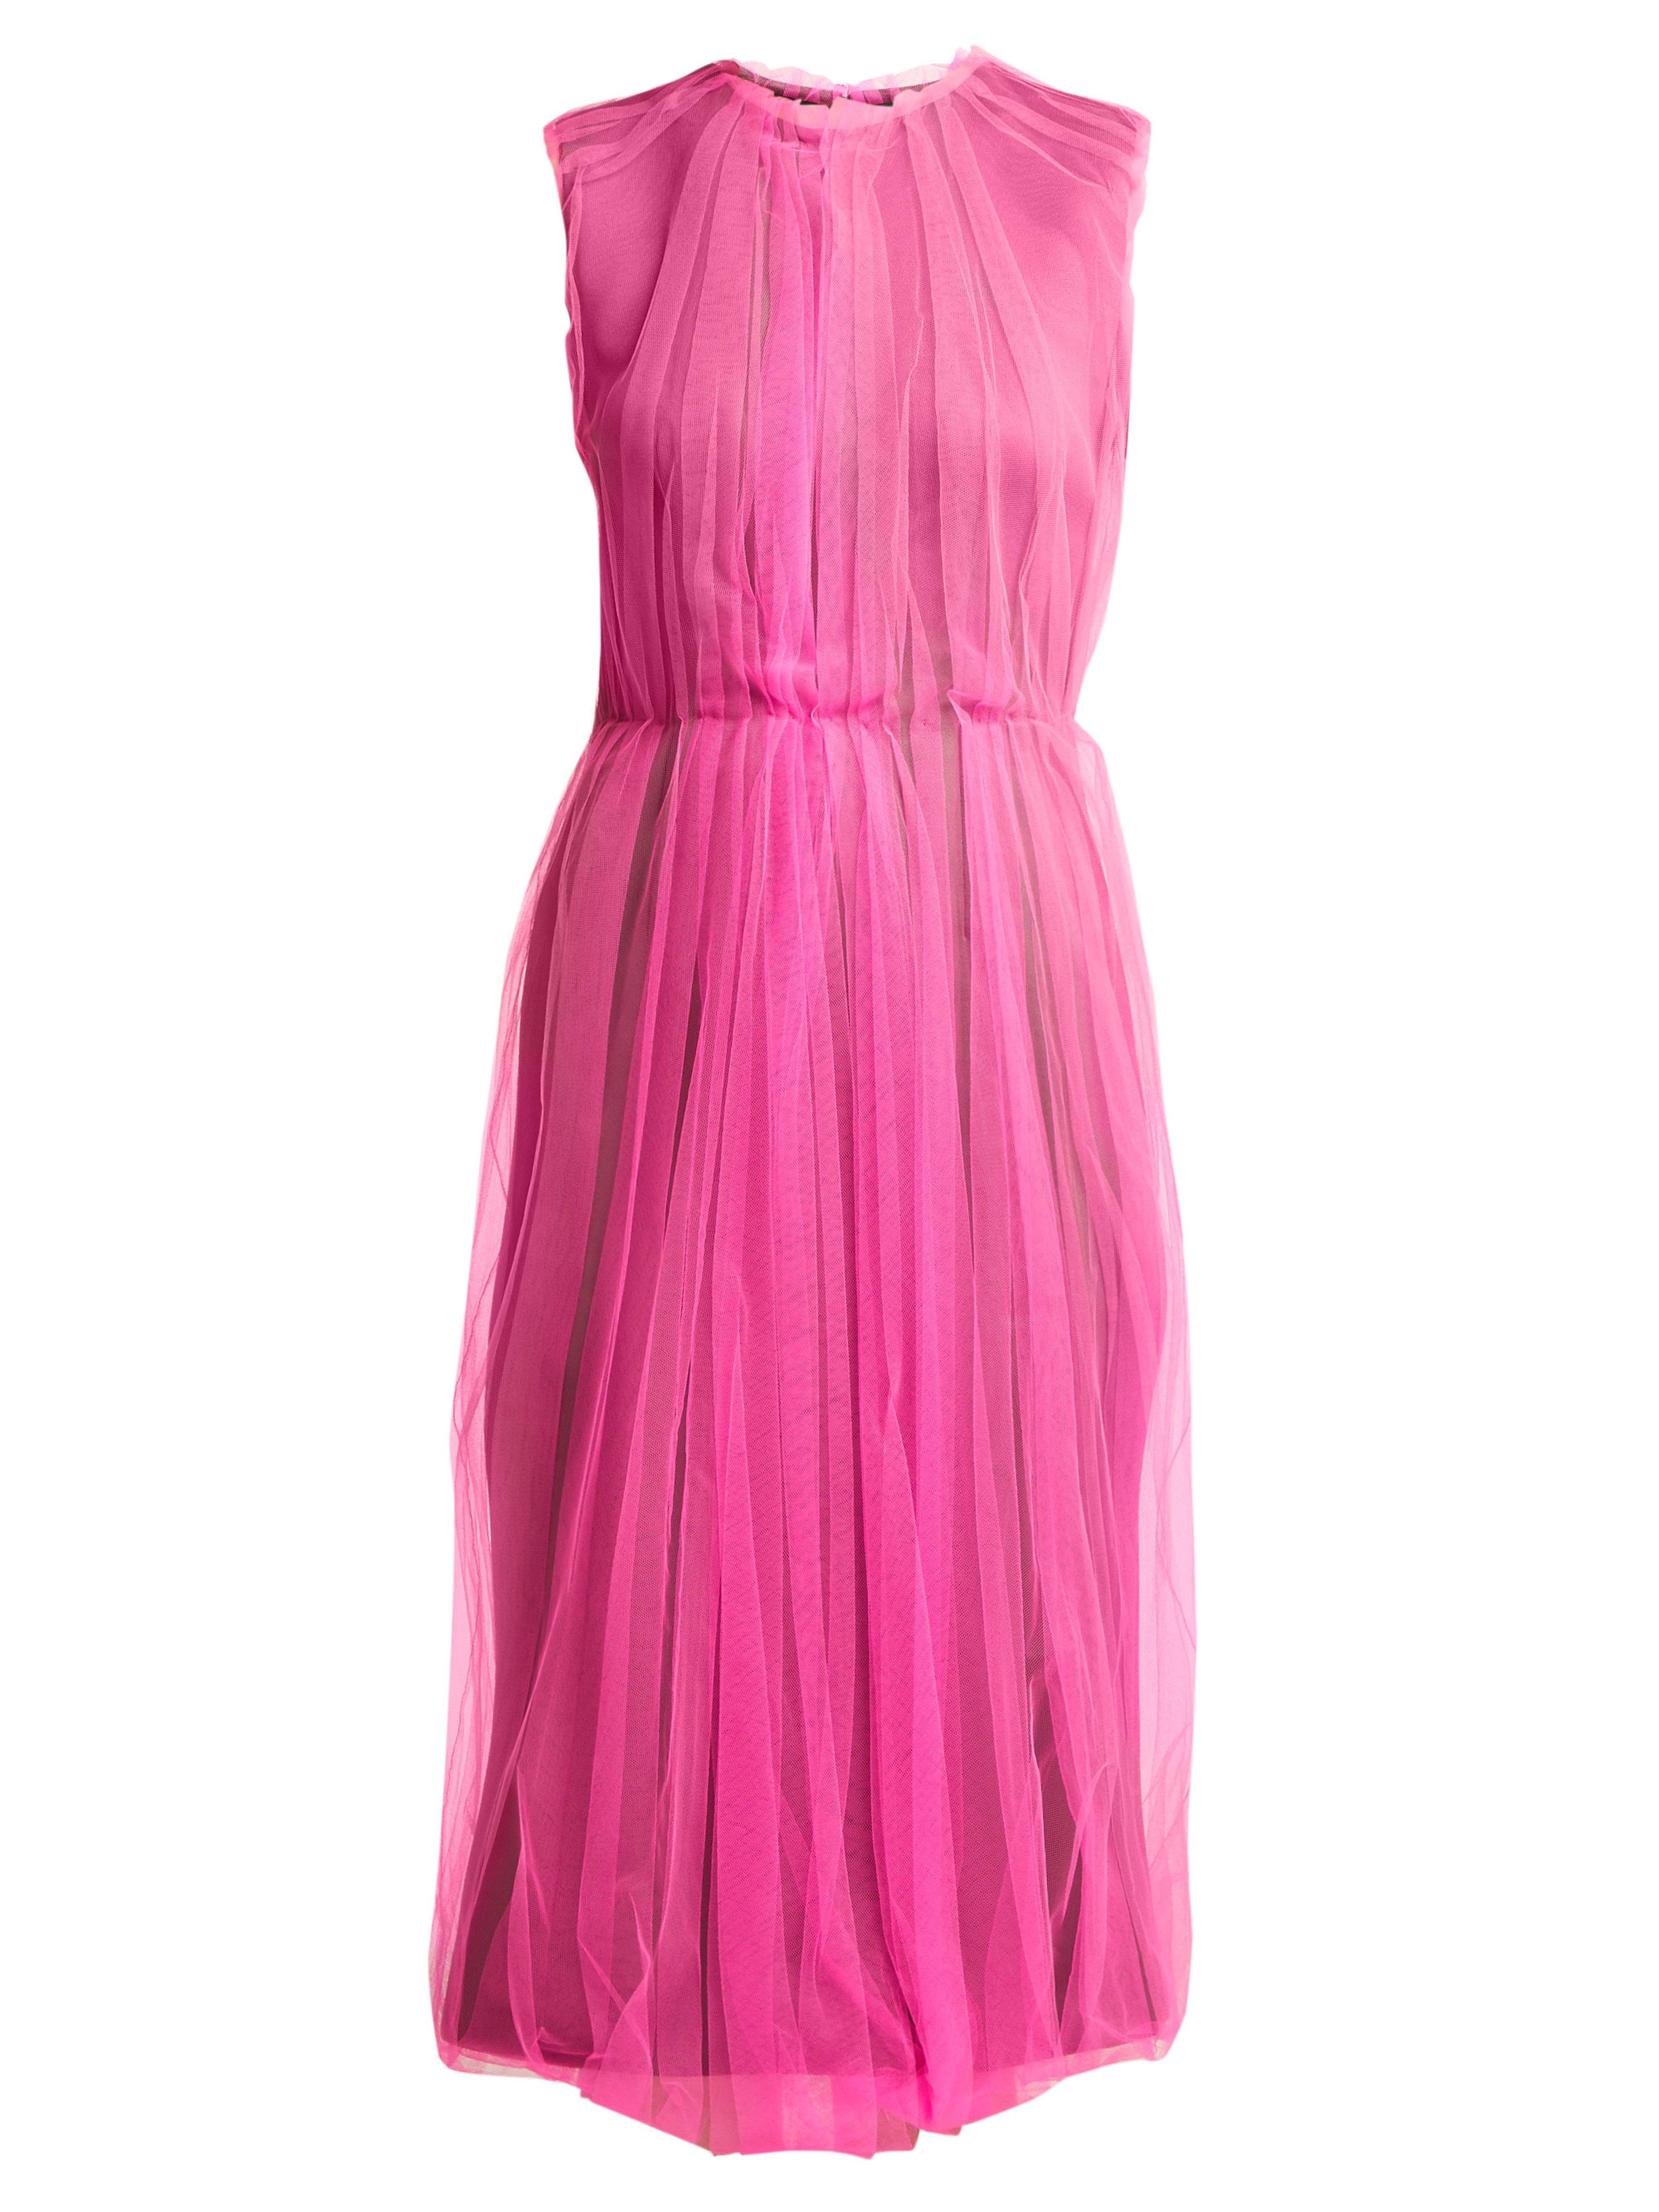 5e4ba013f1 Prada Jersey And Tulle Dress in Pink - Lyst